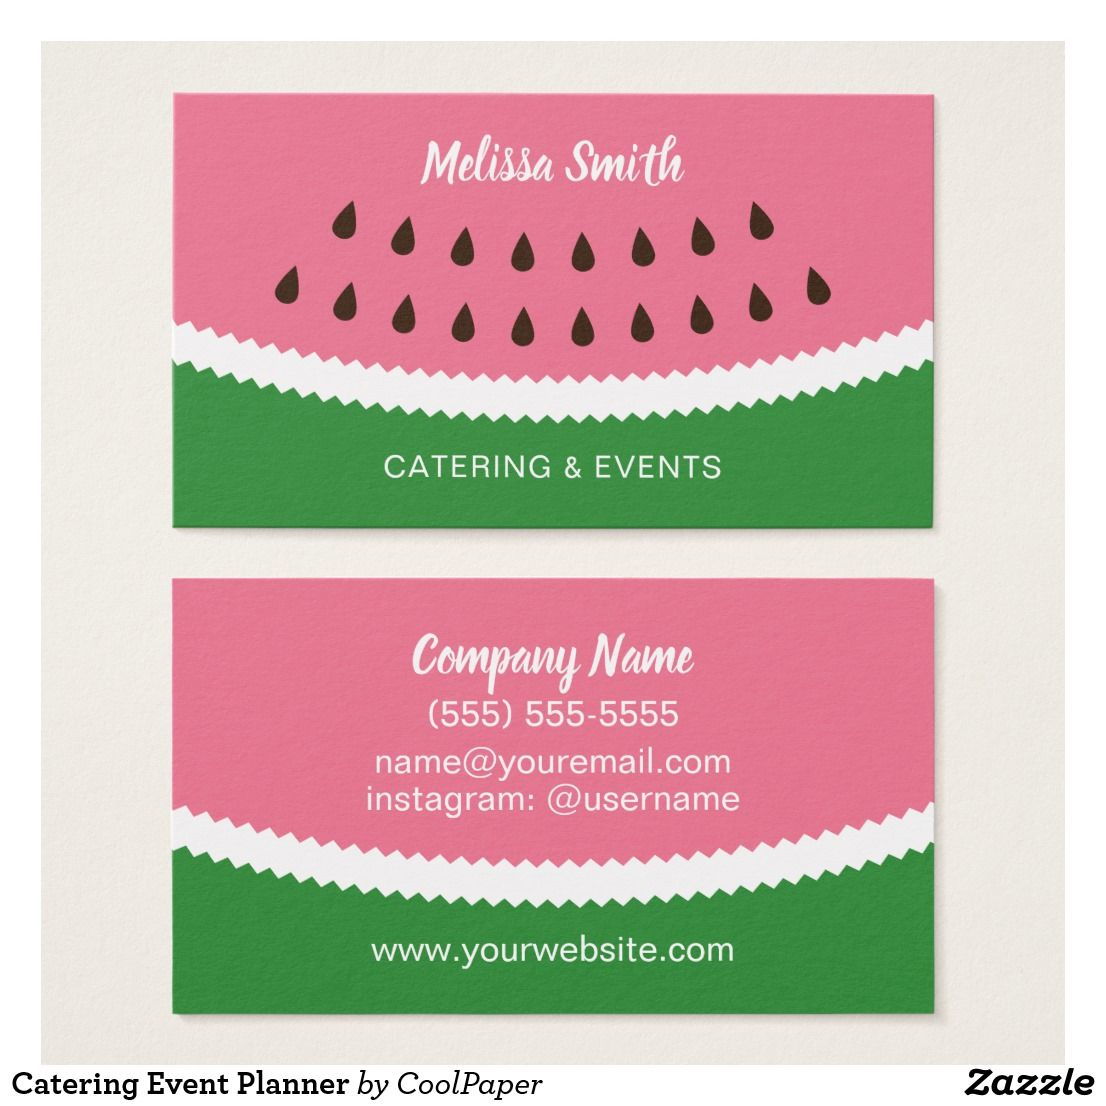 Catering Event Planner Business Card Zazzle Com Event Planner Business Card Event Planning Business Event Planning Business Cards